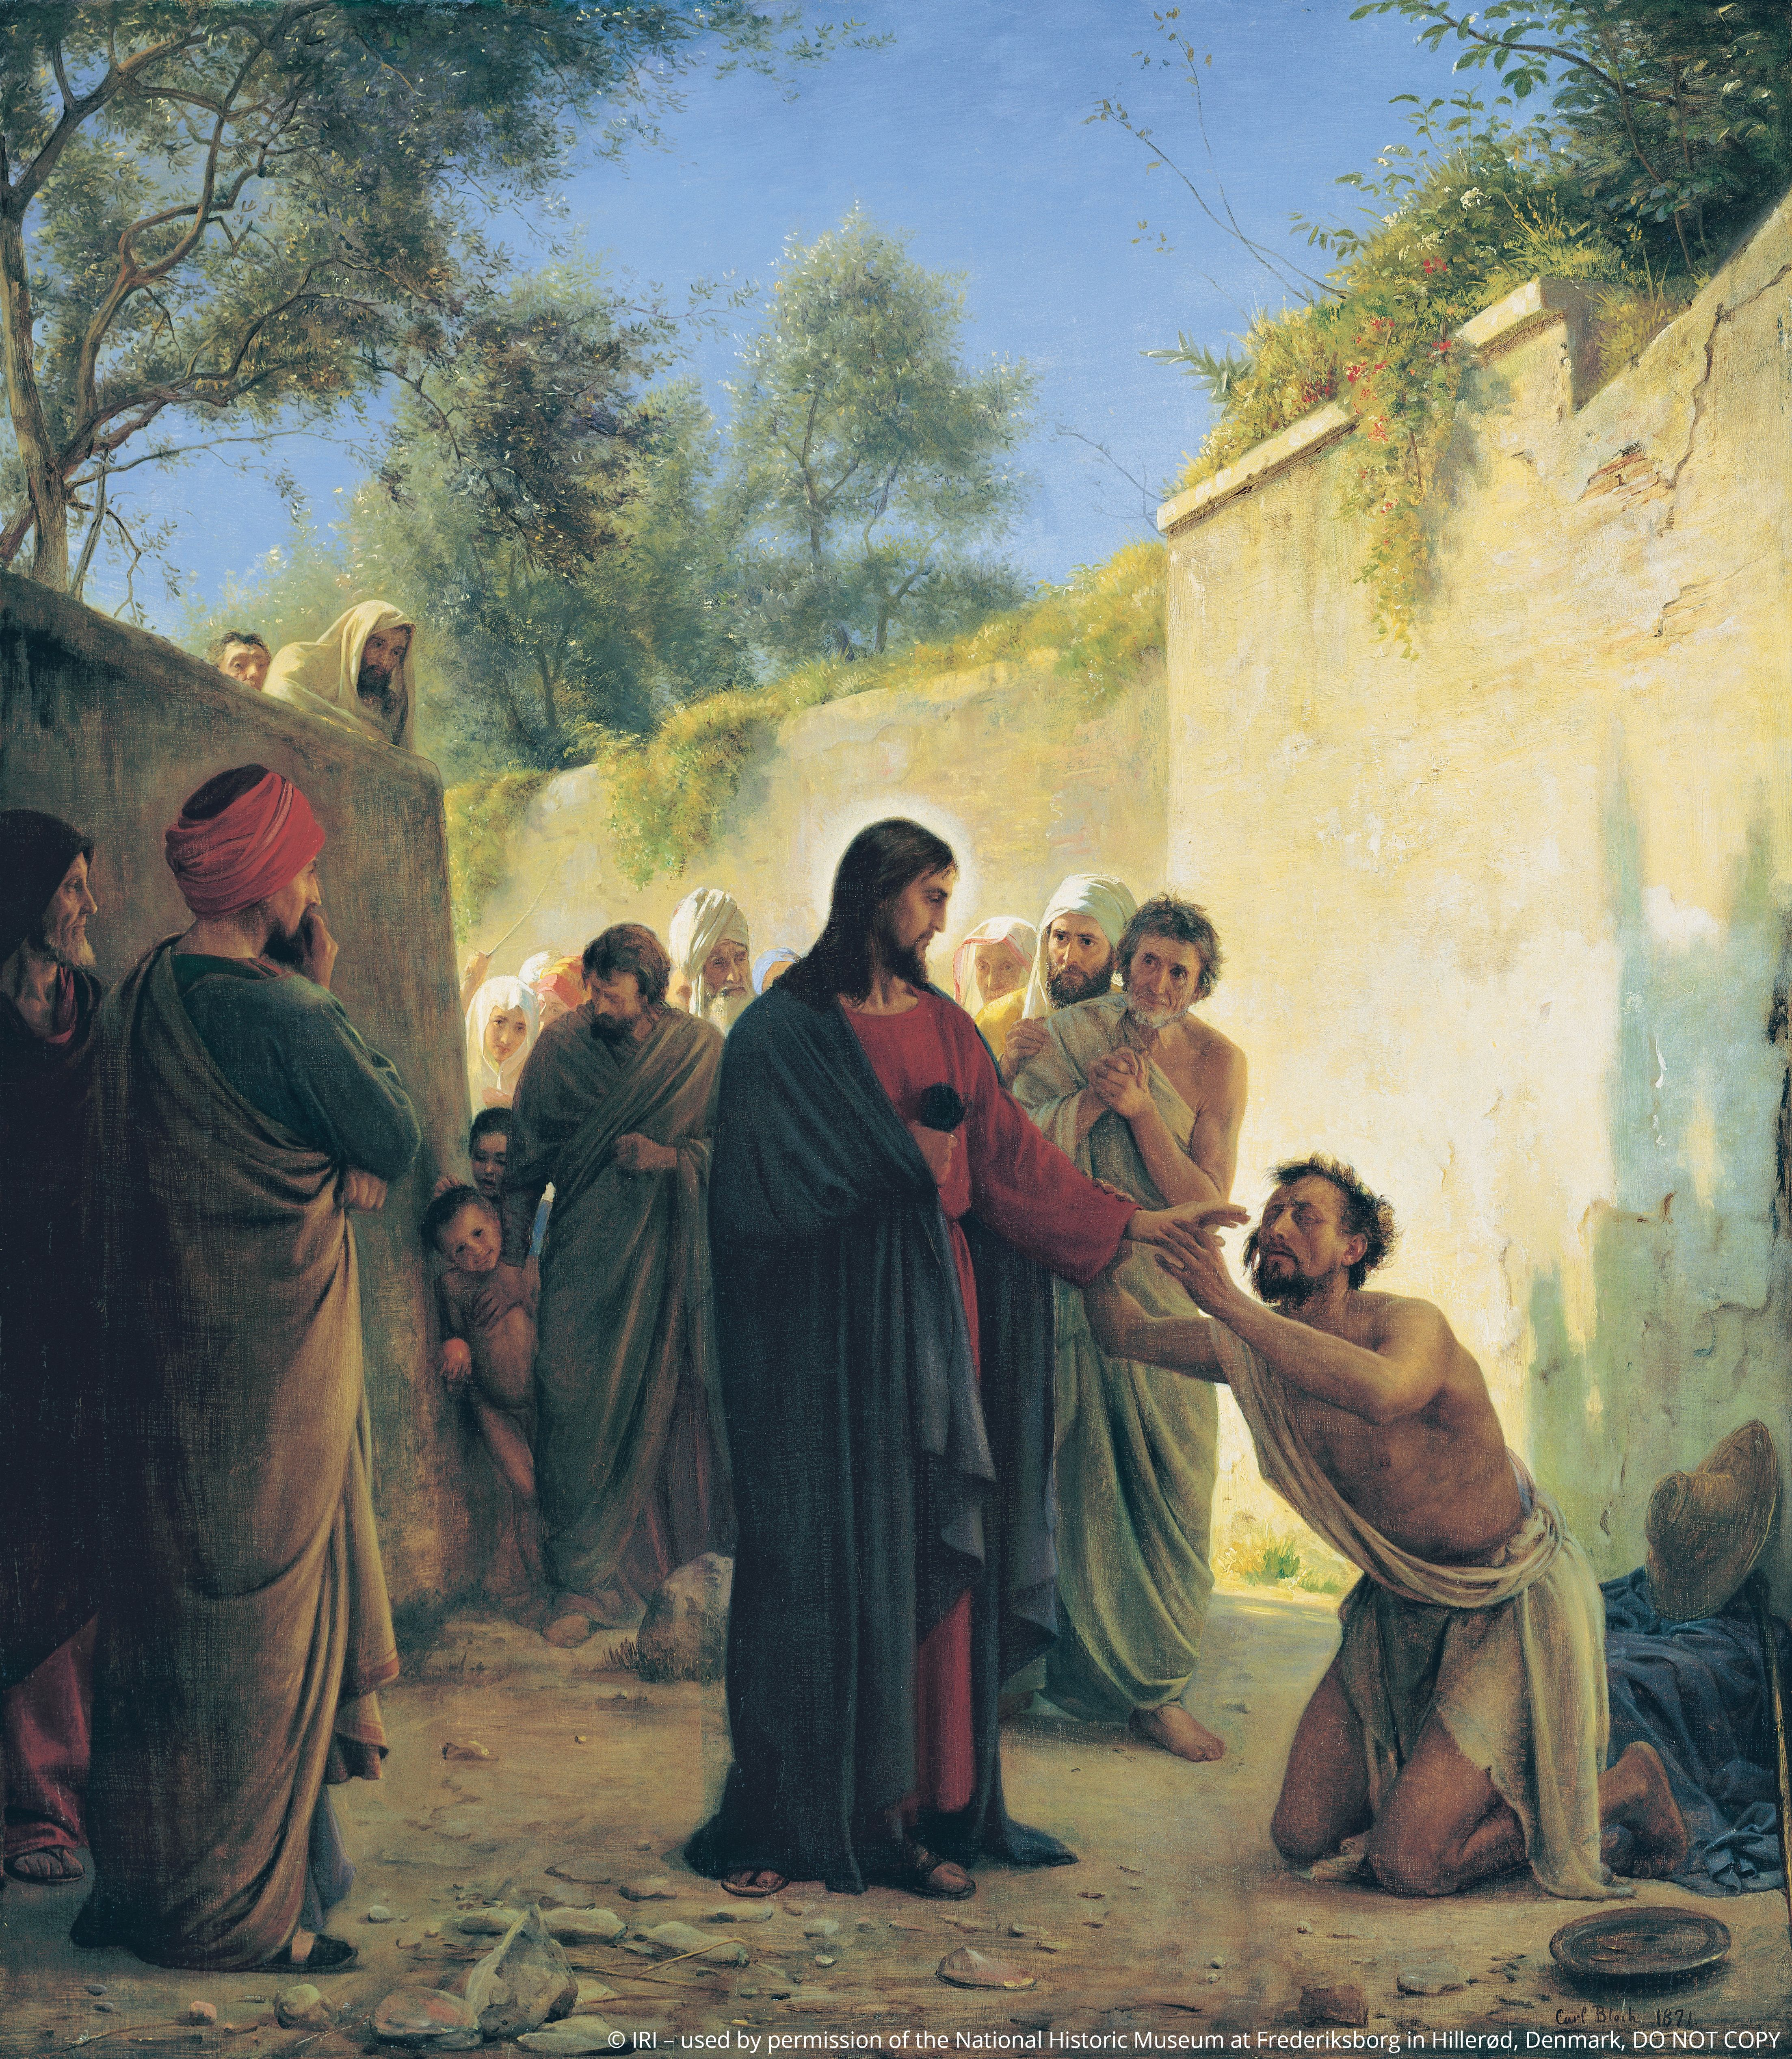 Jesus Healing the Blind (Healing the Blind Man), by Carl Heinrich Bloch; © IRI, used by permission of the National Historic Museum at Frederiksborg in Hillerød, Denmark. DO NOT COPY. This asset is for Church use and online viewing only.